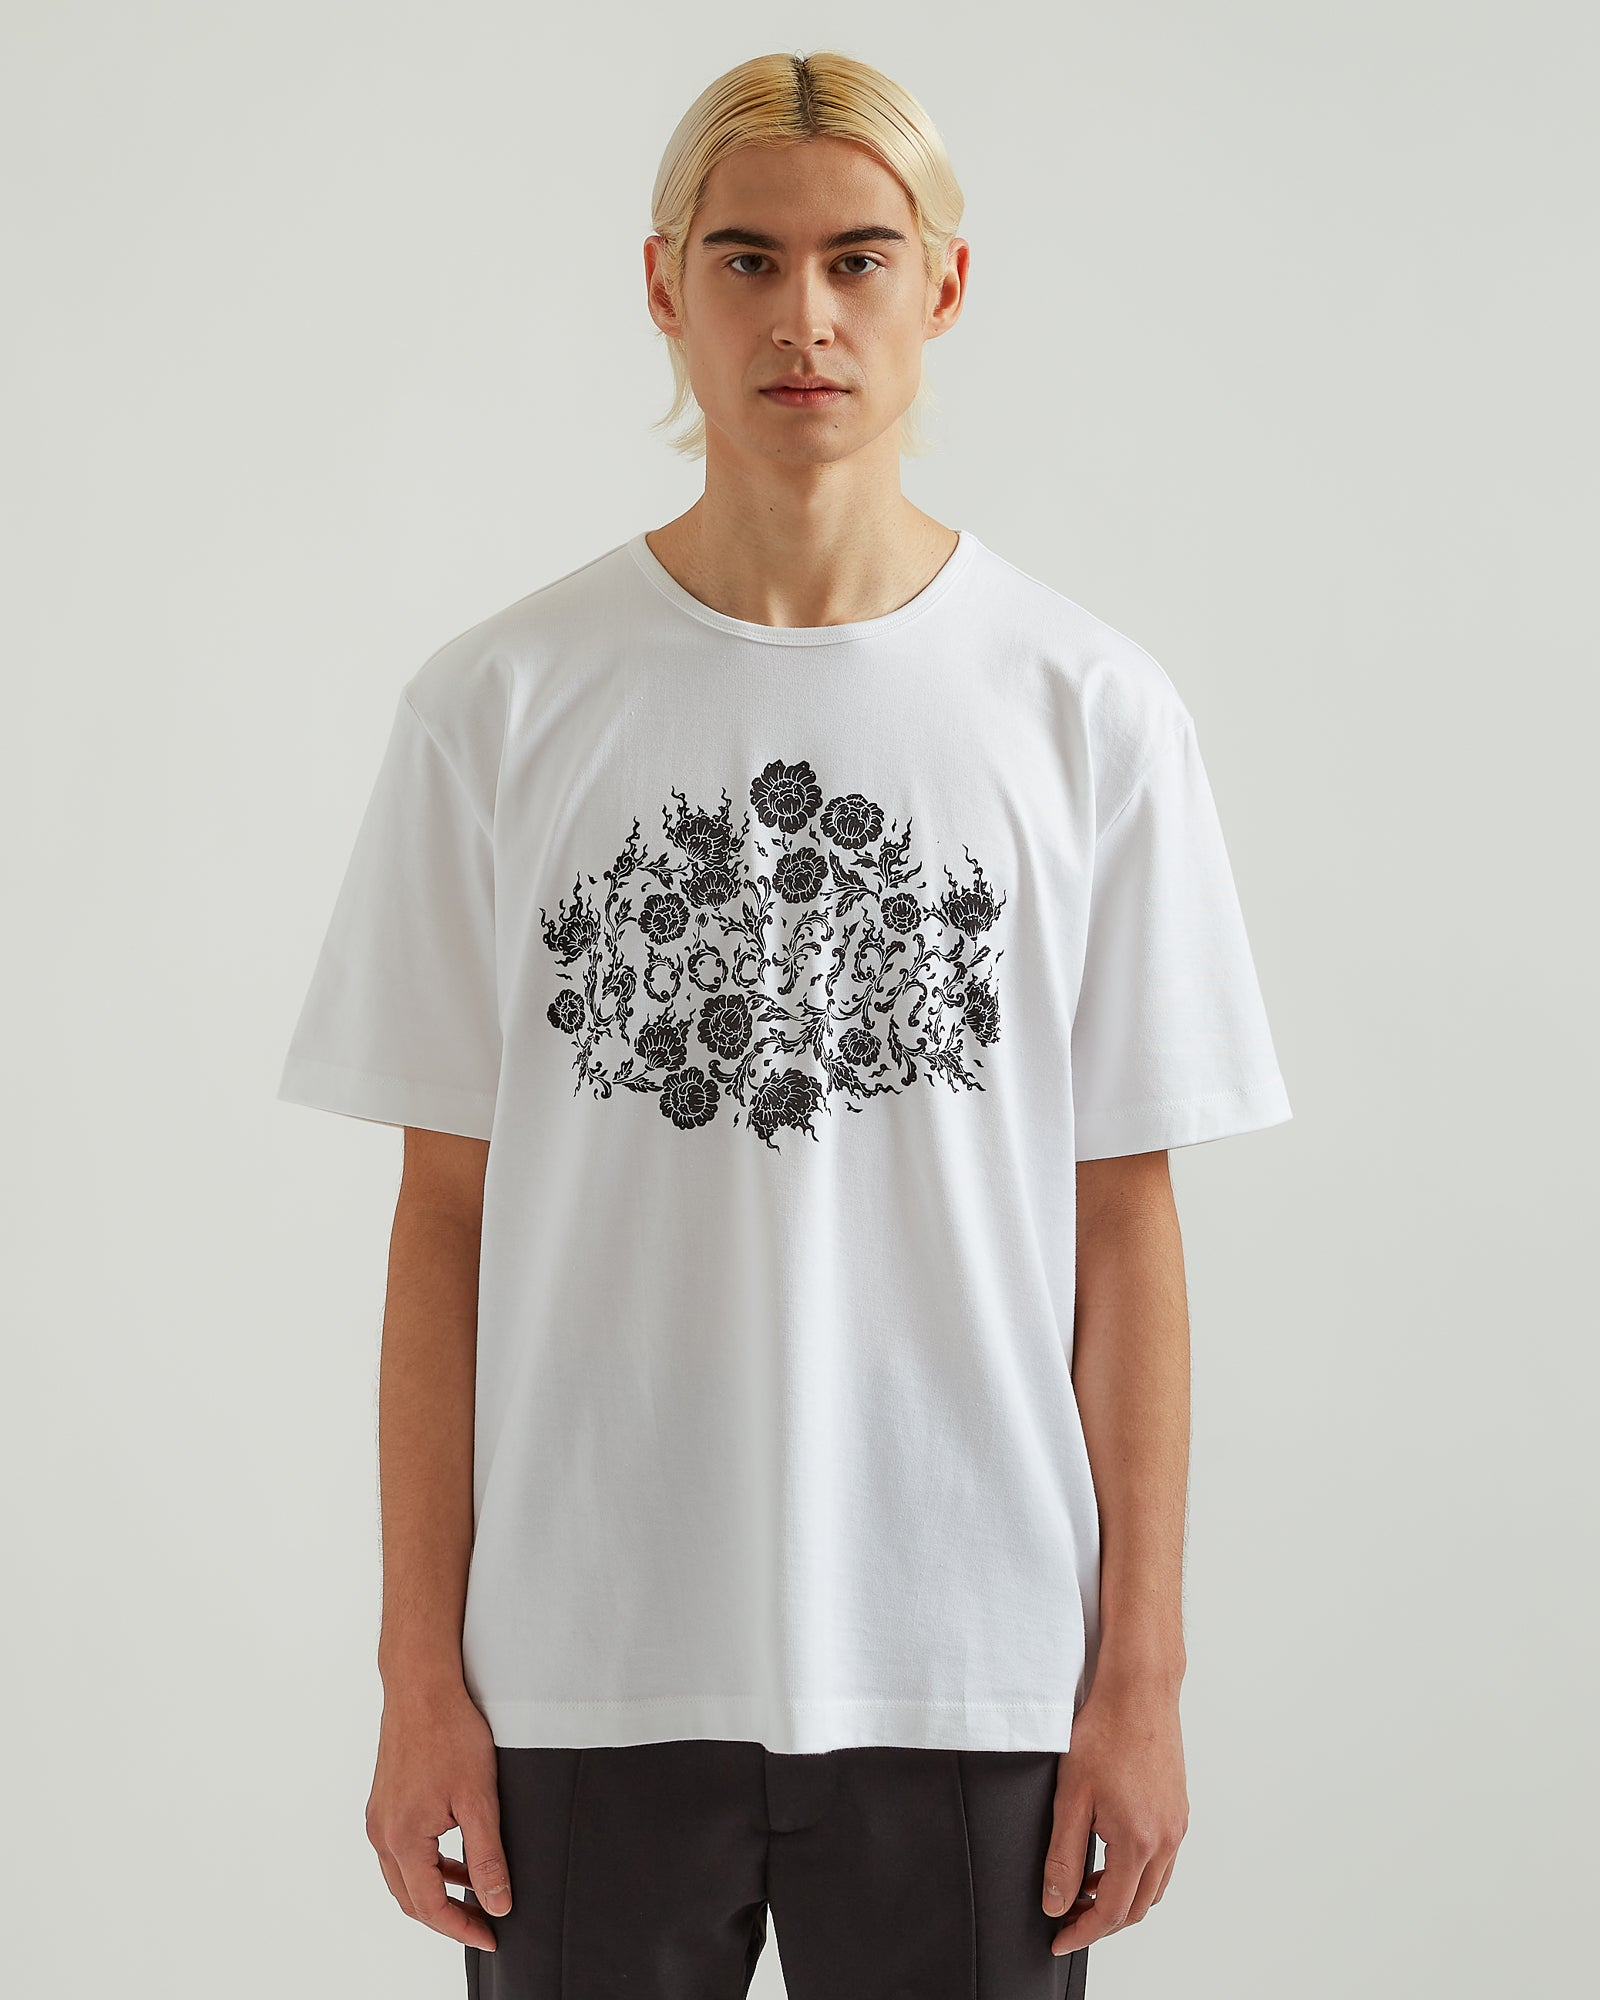 North Am Tour T-Shirt in White